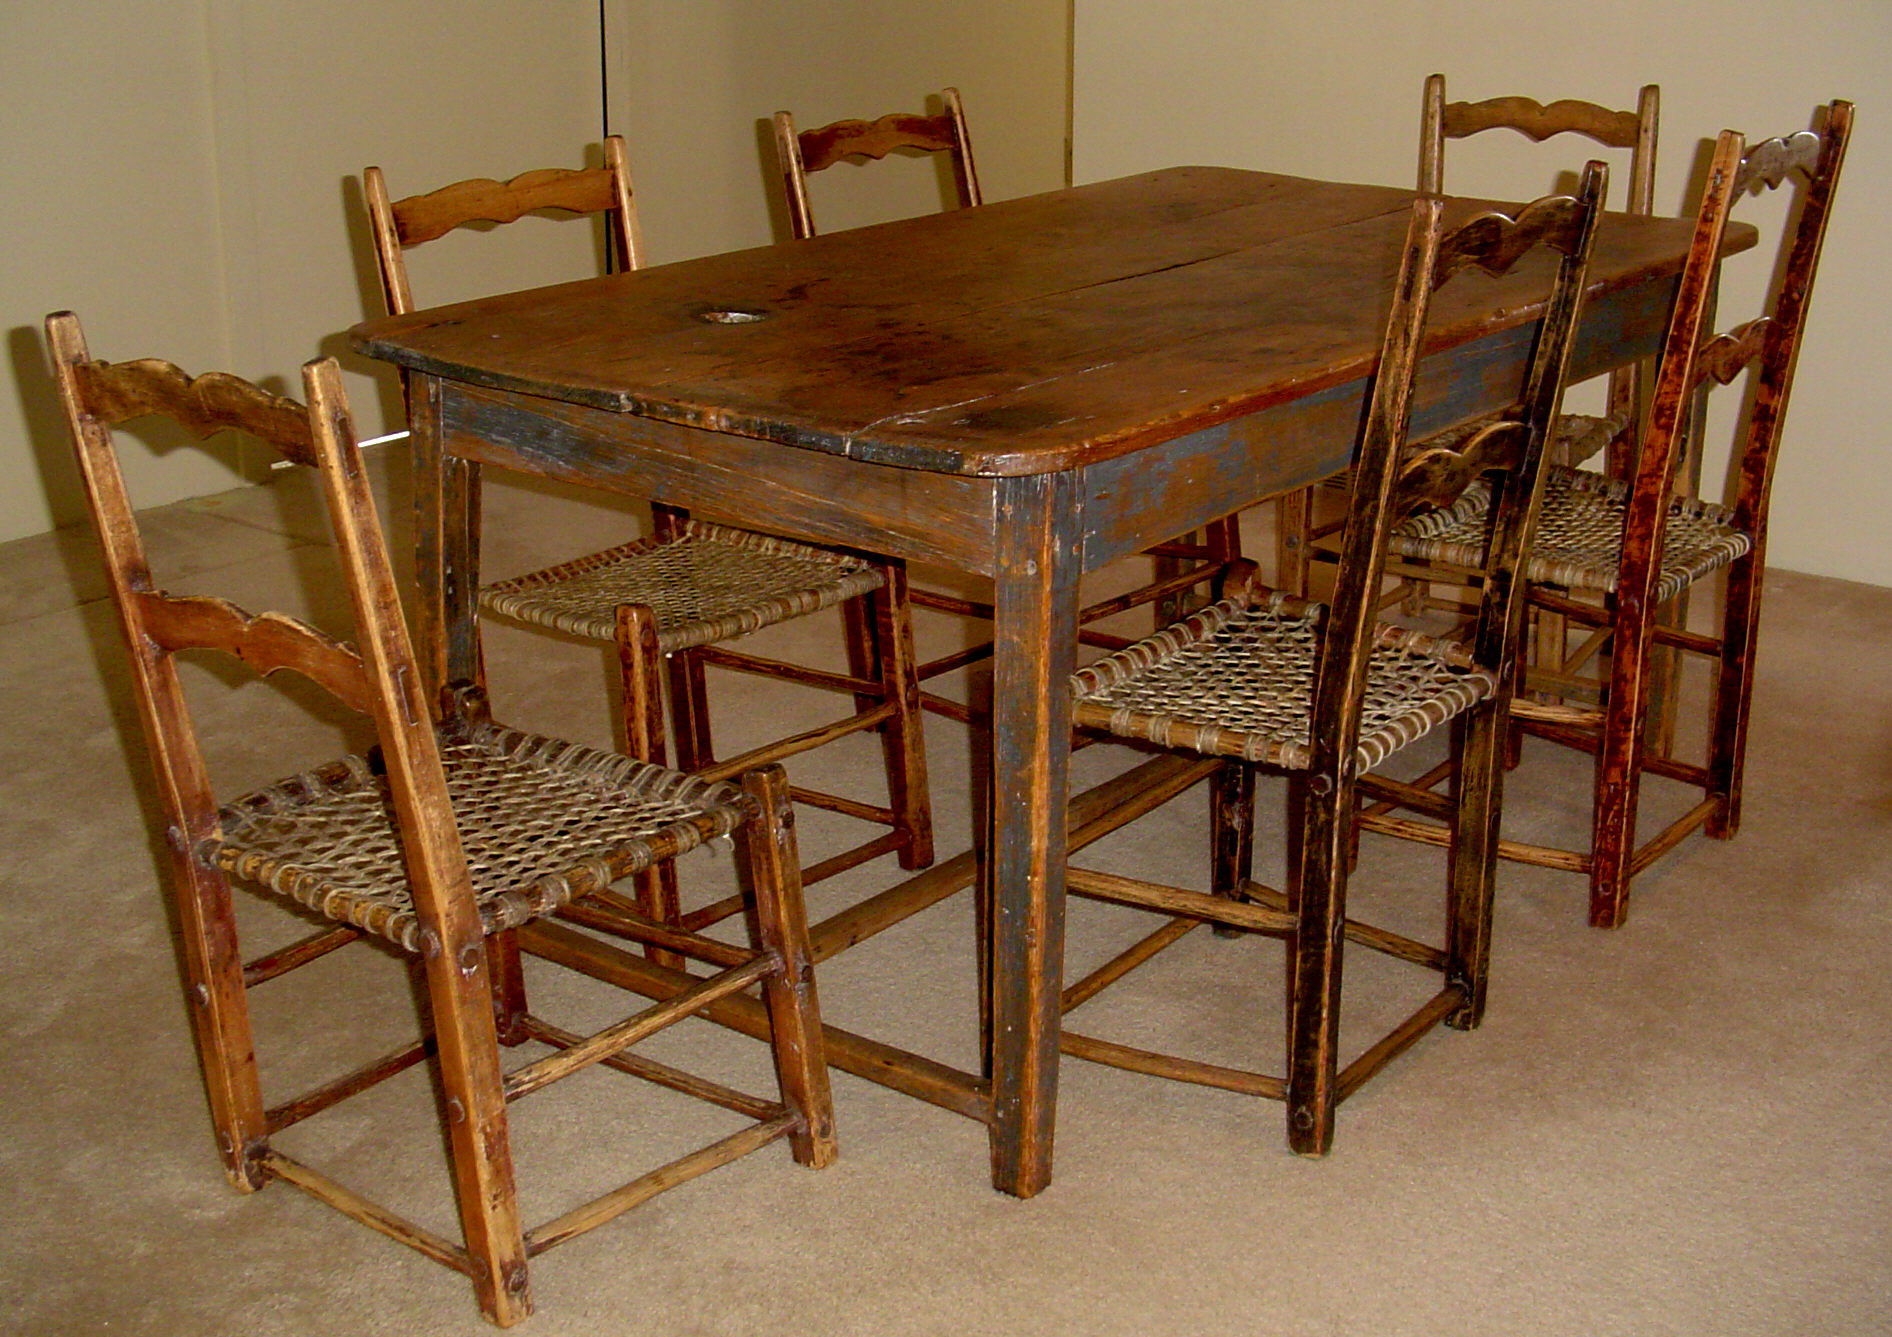 Primitive kitchen set canadian pine wood furniture for for Kitchen furniture sale